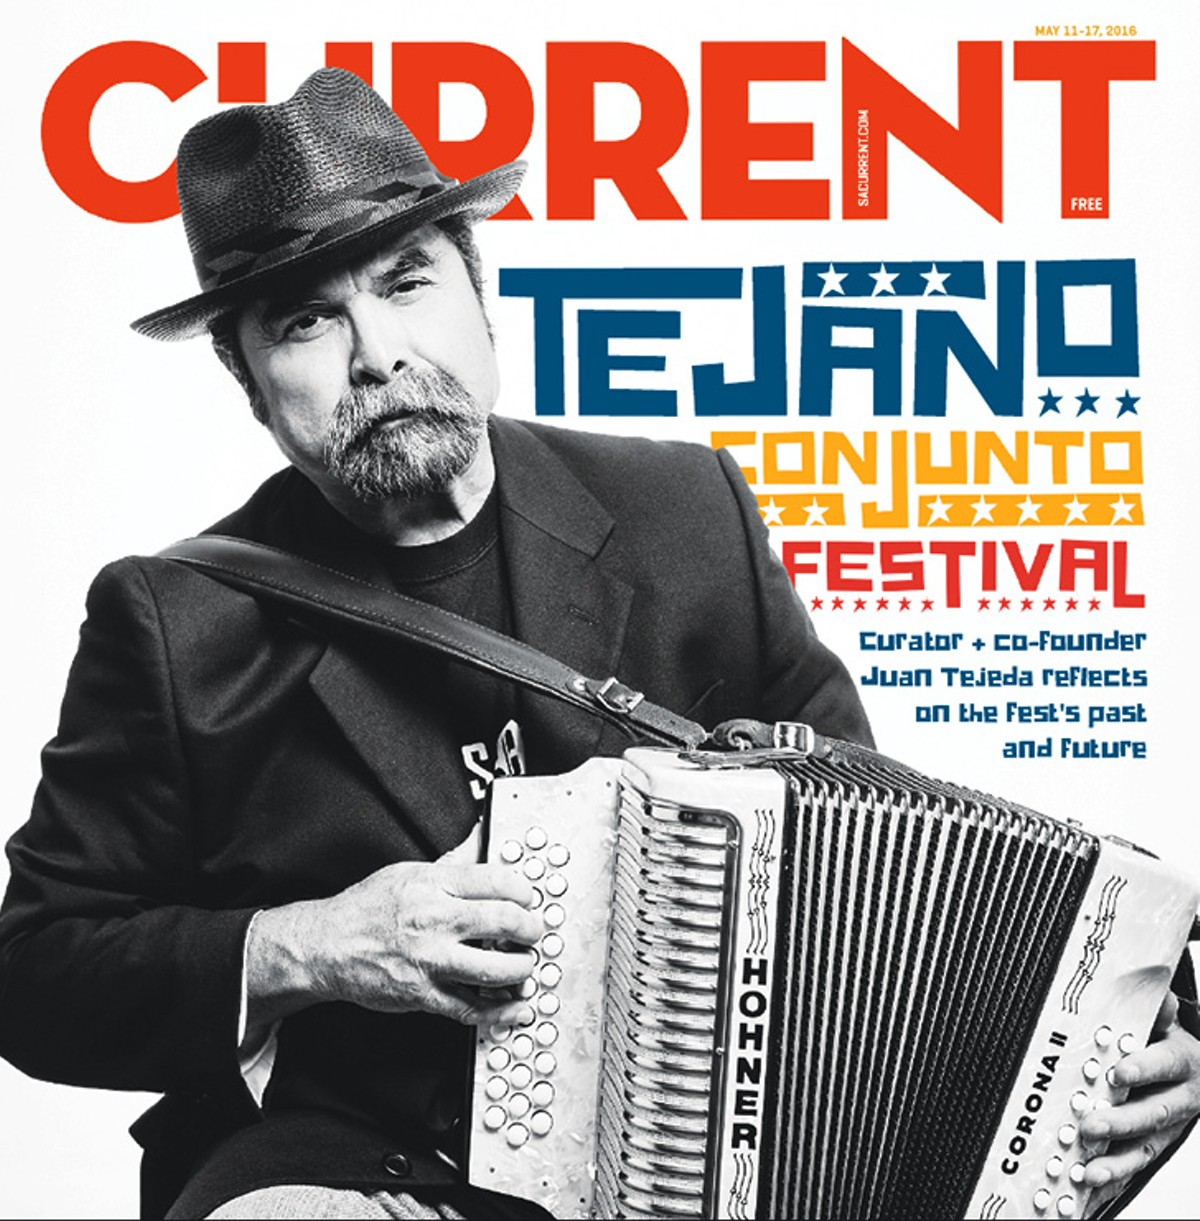 A changing of the guard for the Tejano Conjunto Festival